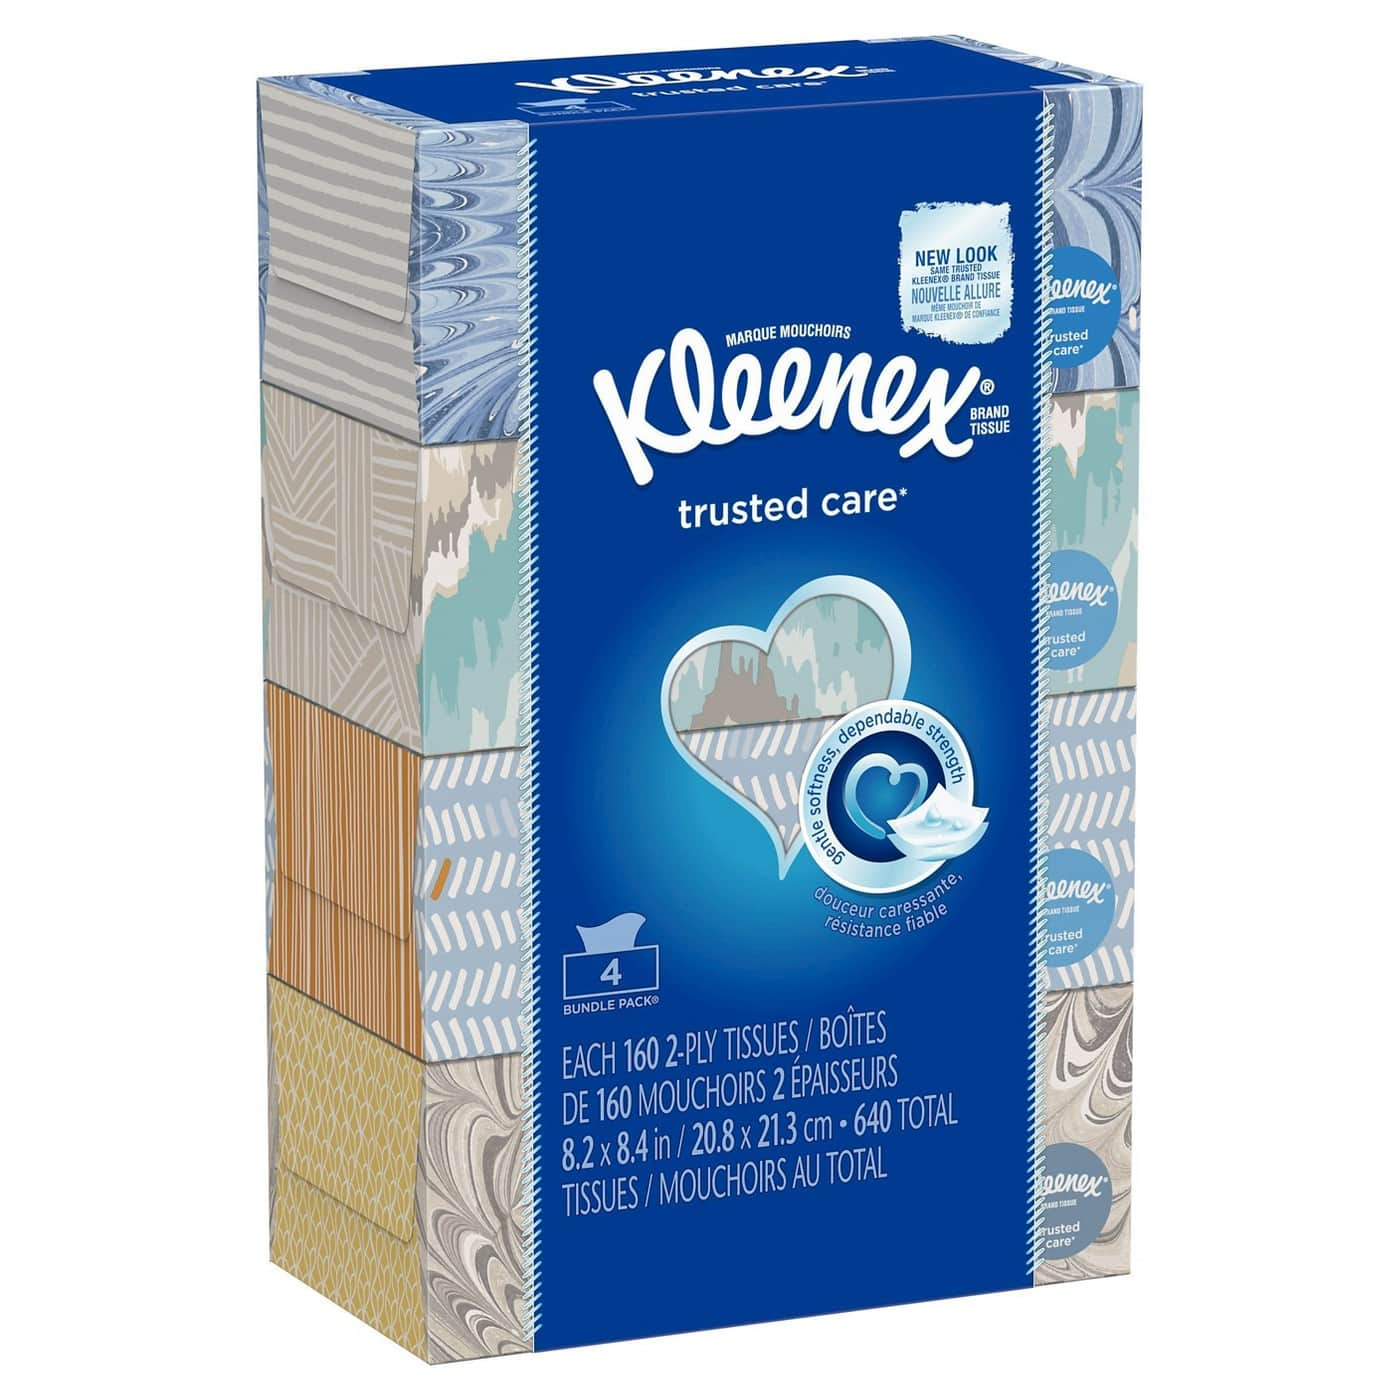 8-Pack 160-Count Kleenex 2-Ply Facial Tissues + $5 Target Gift Card $11.38 w/ S&S & More + Free Shipping